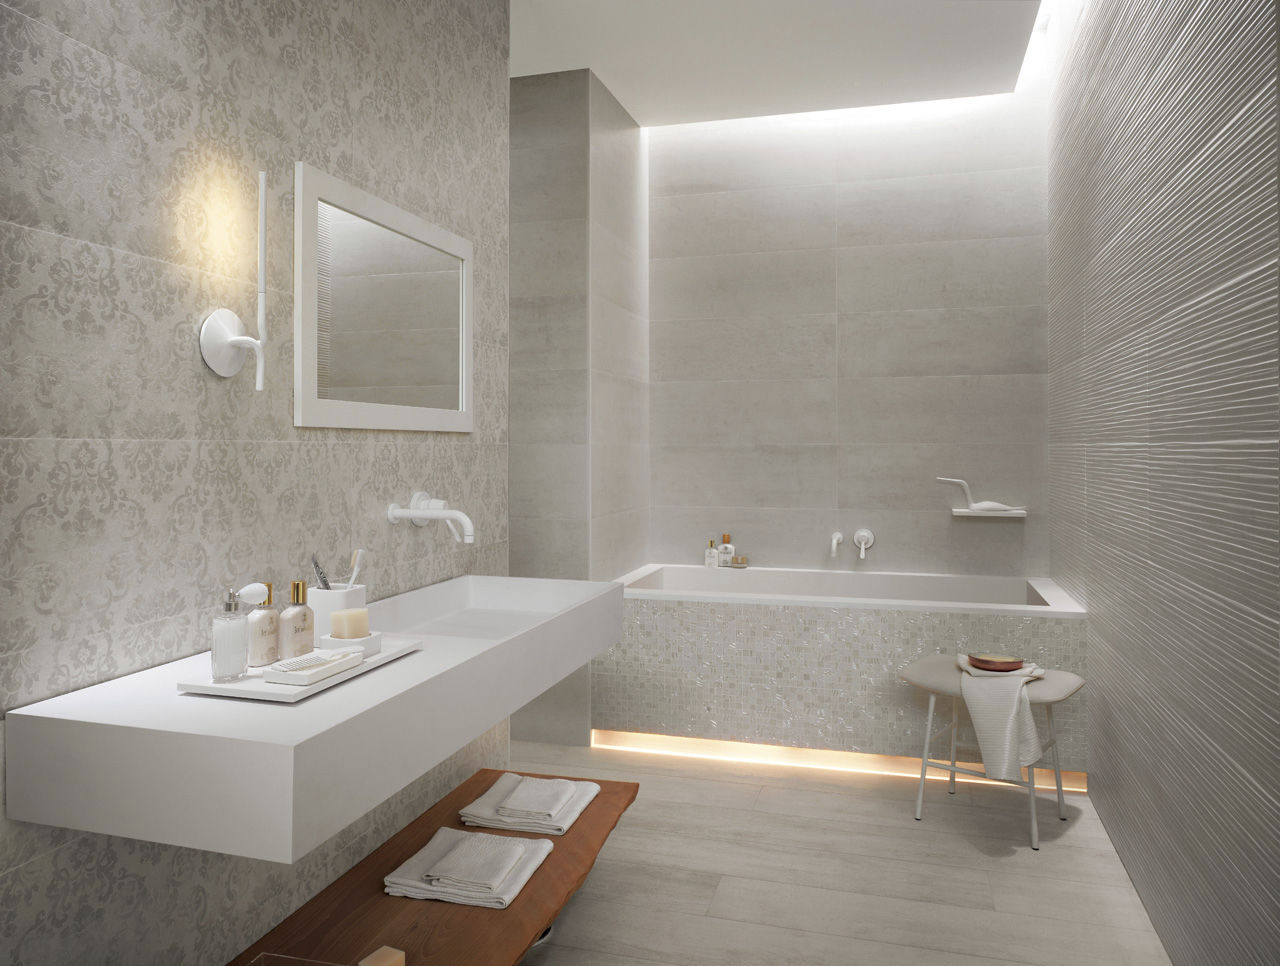 Bathroom tile   floor   porcelain stoneware   plain MELTIN   CALCE FAP ceramiche. Bathroom tile   floor   porcelain stoneware   plain   MELTIN